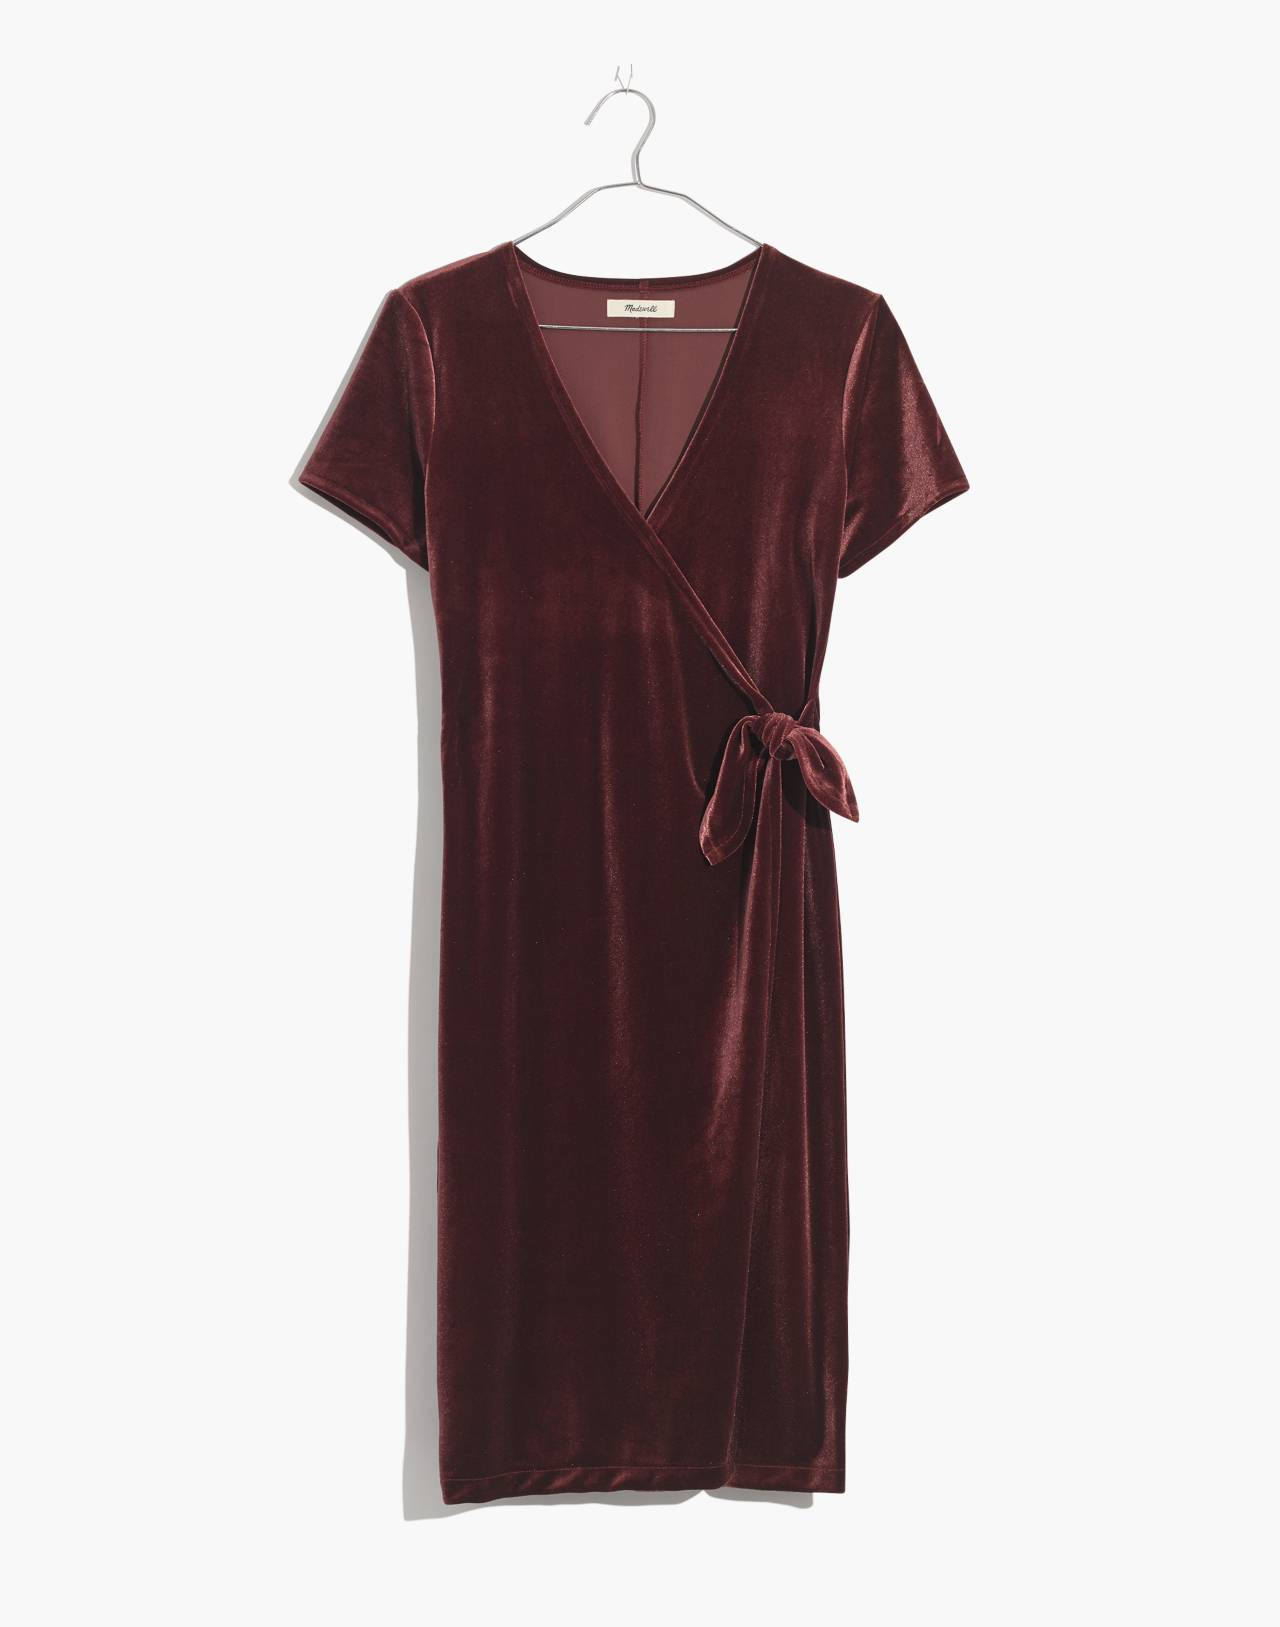 Velvet Side-Tie Dress in pinot noir image 4